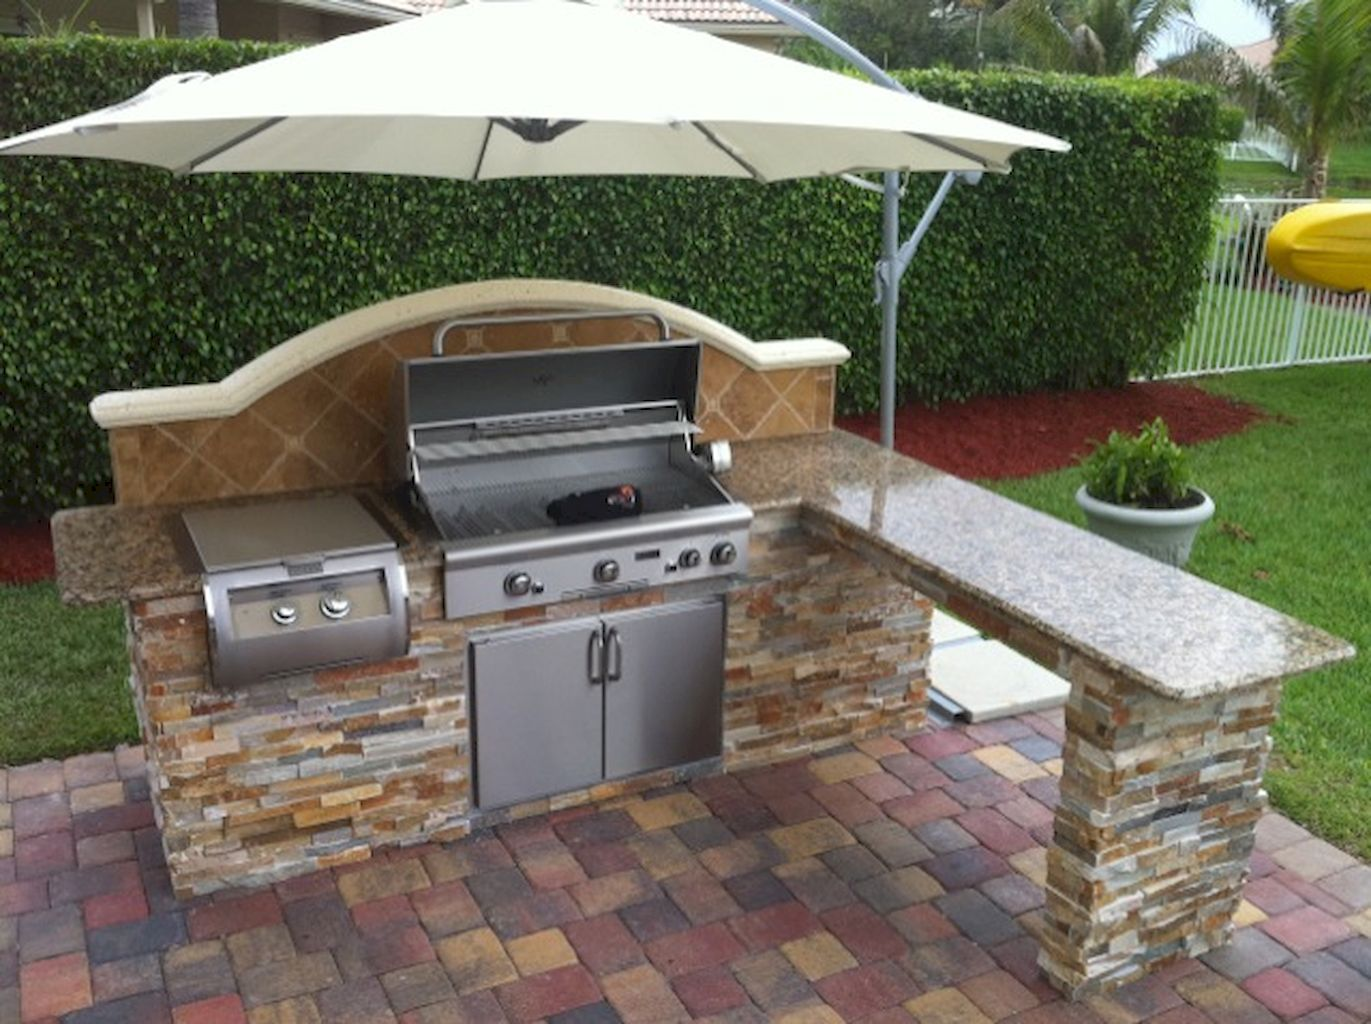 Diy outdoor kitchen kits  Find out the best and awesome outdoor kitchen design plans kits